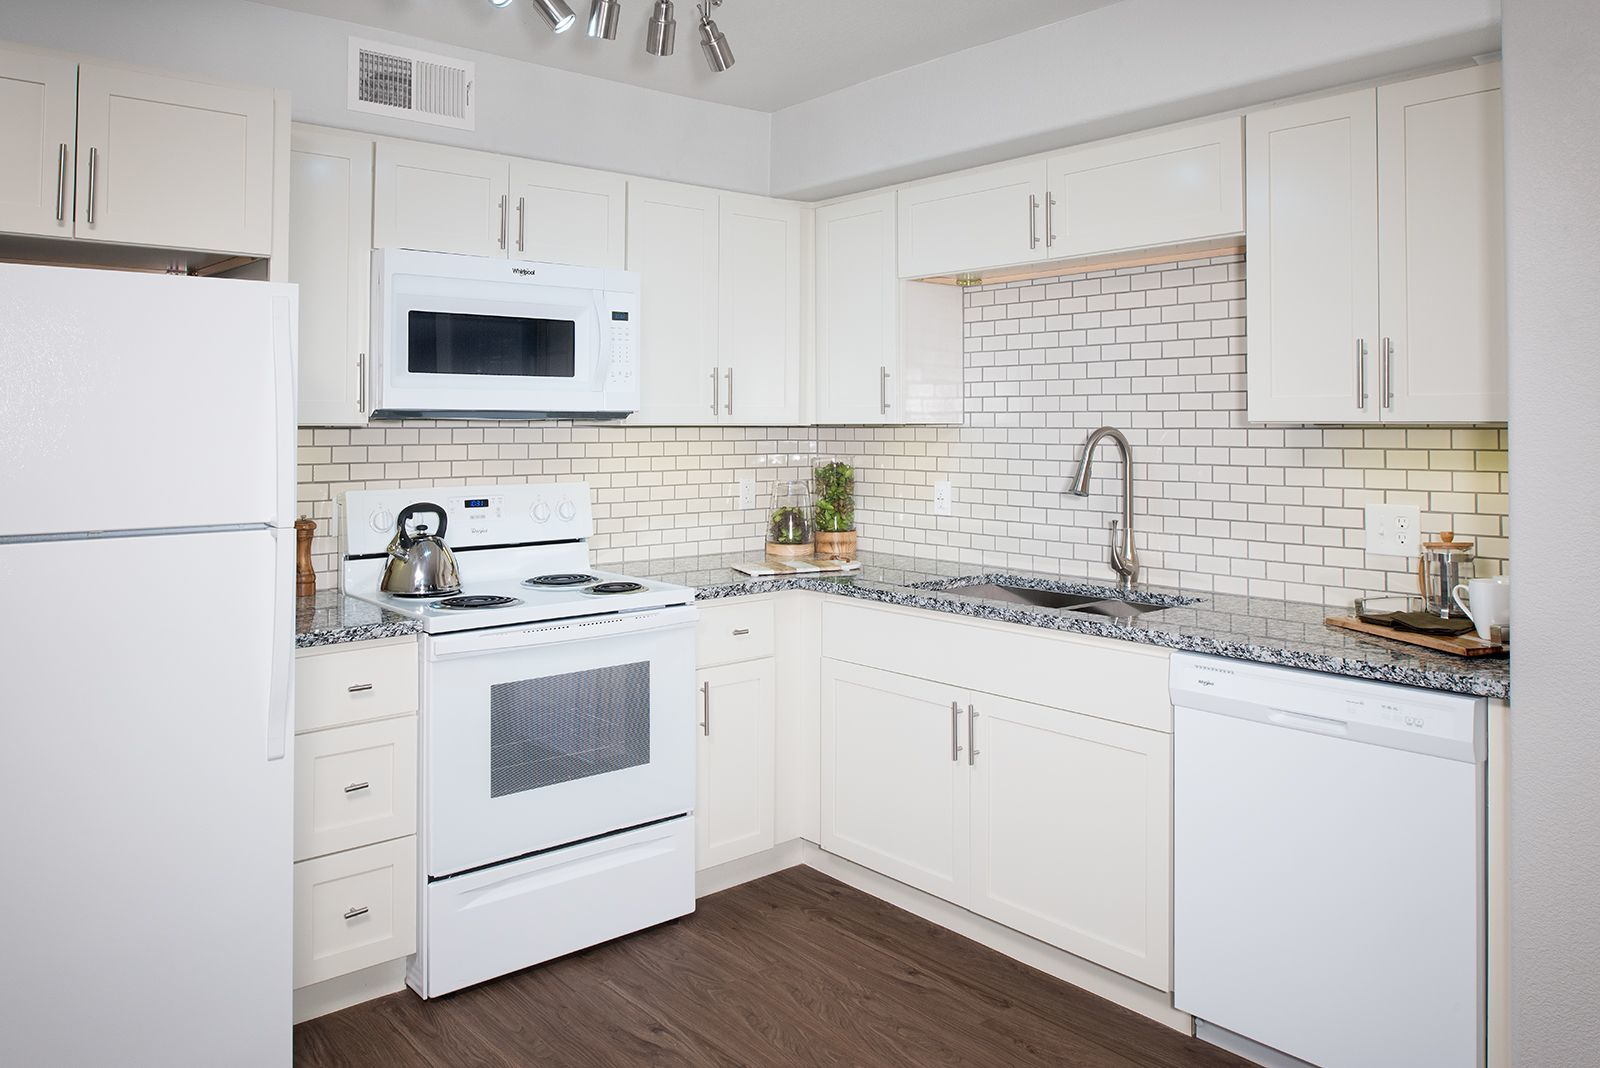 Attiva Court Active Living by Cortland